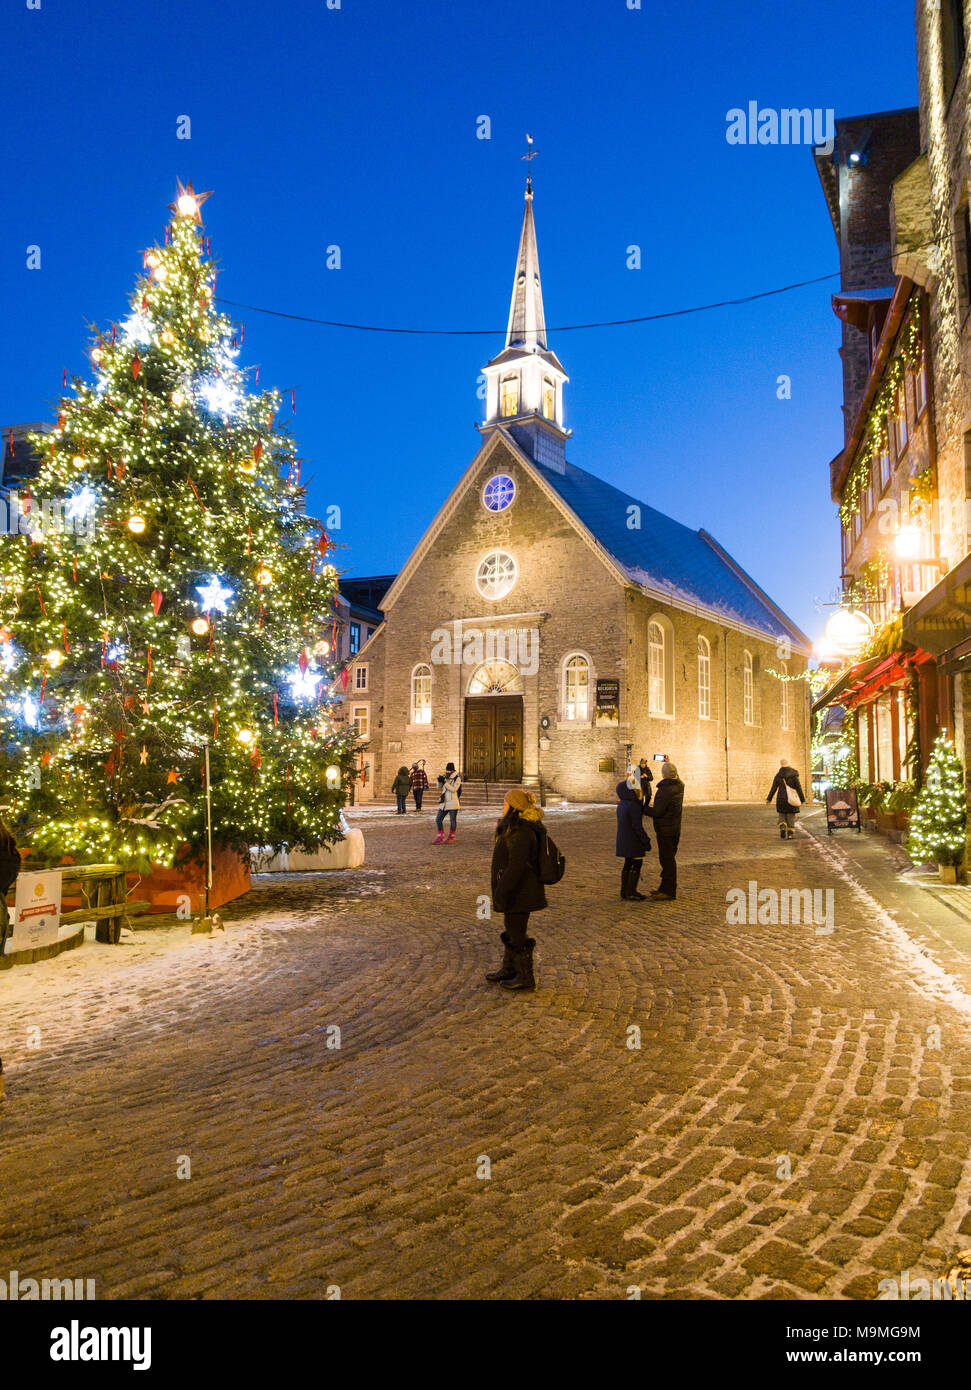 Notre Dame des Victorires and Christmas Tree: The small church in the touristic section of Lower Quebec with a large lit christmas tree in the square. Tourists watch and wander. - Stock Image